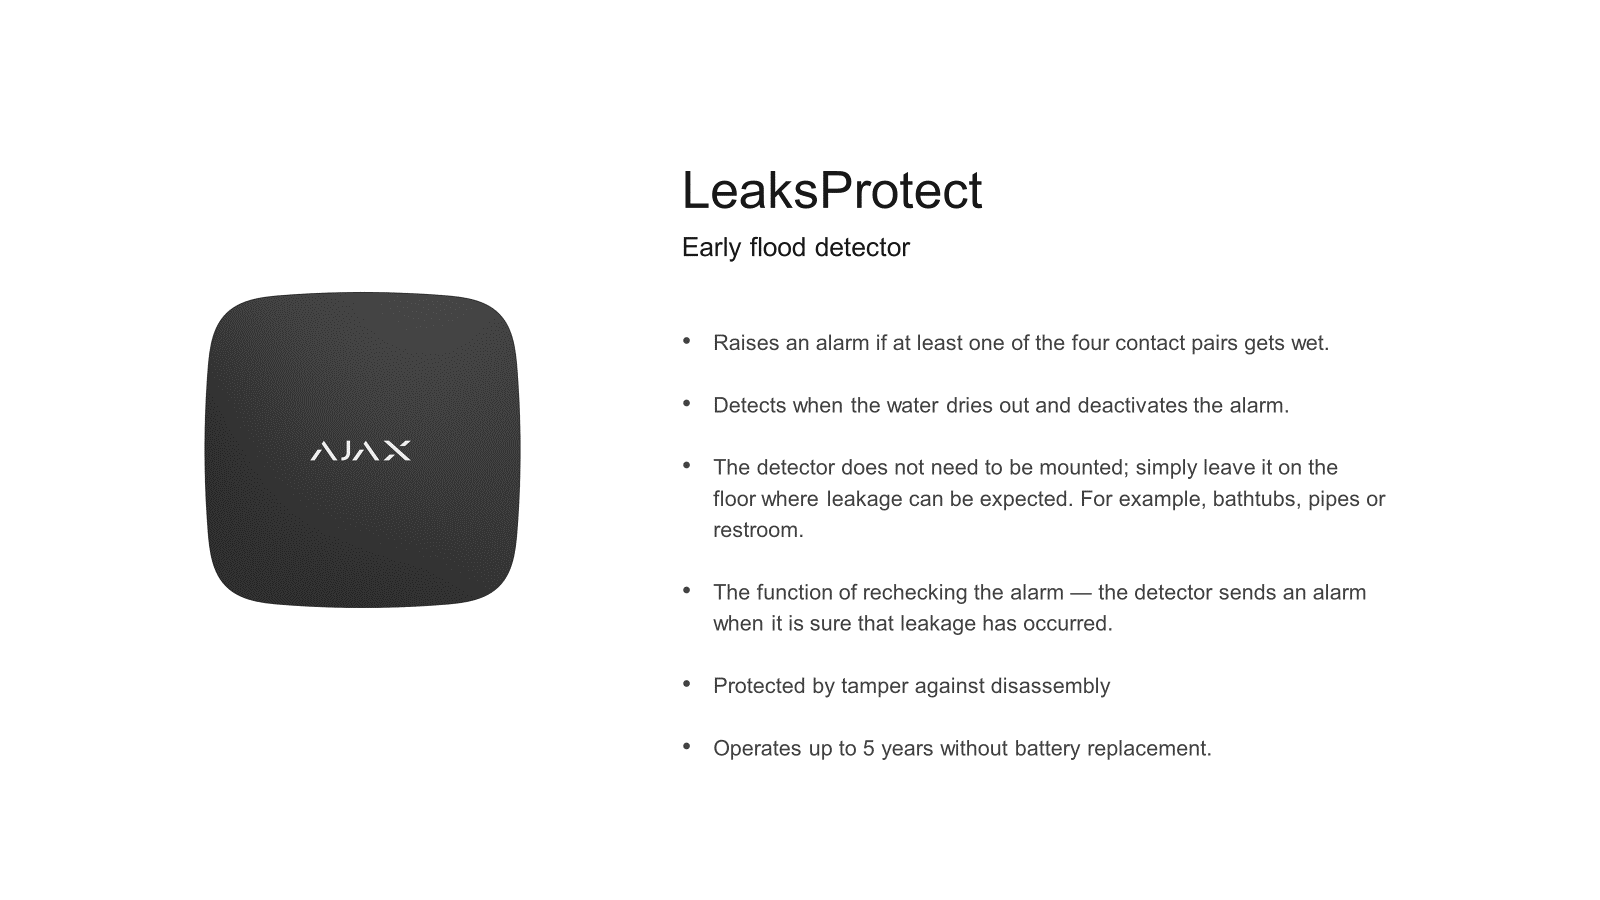 Ajax Leak Protect